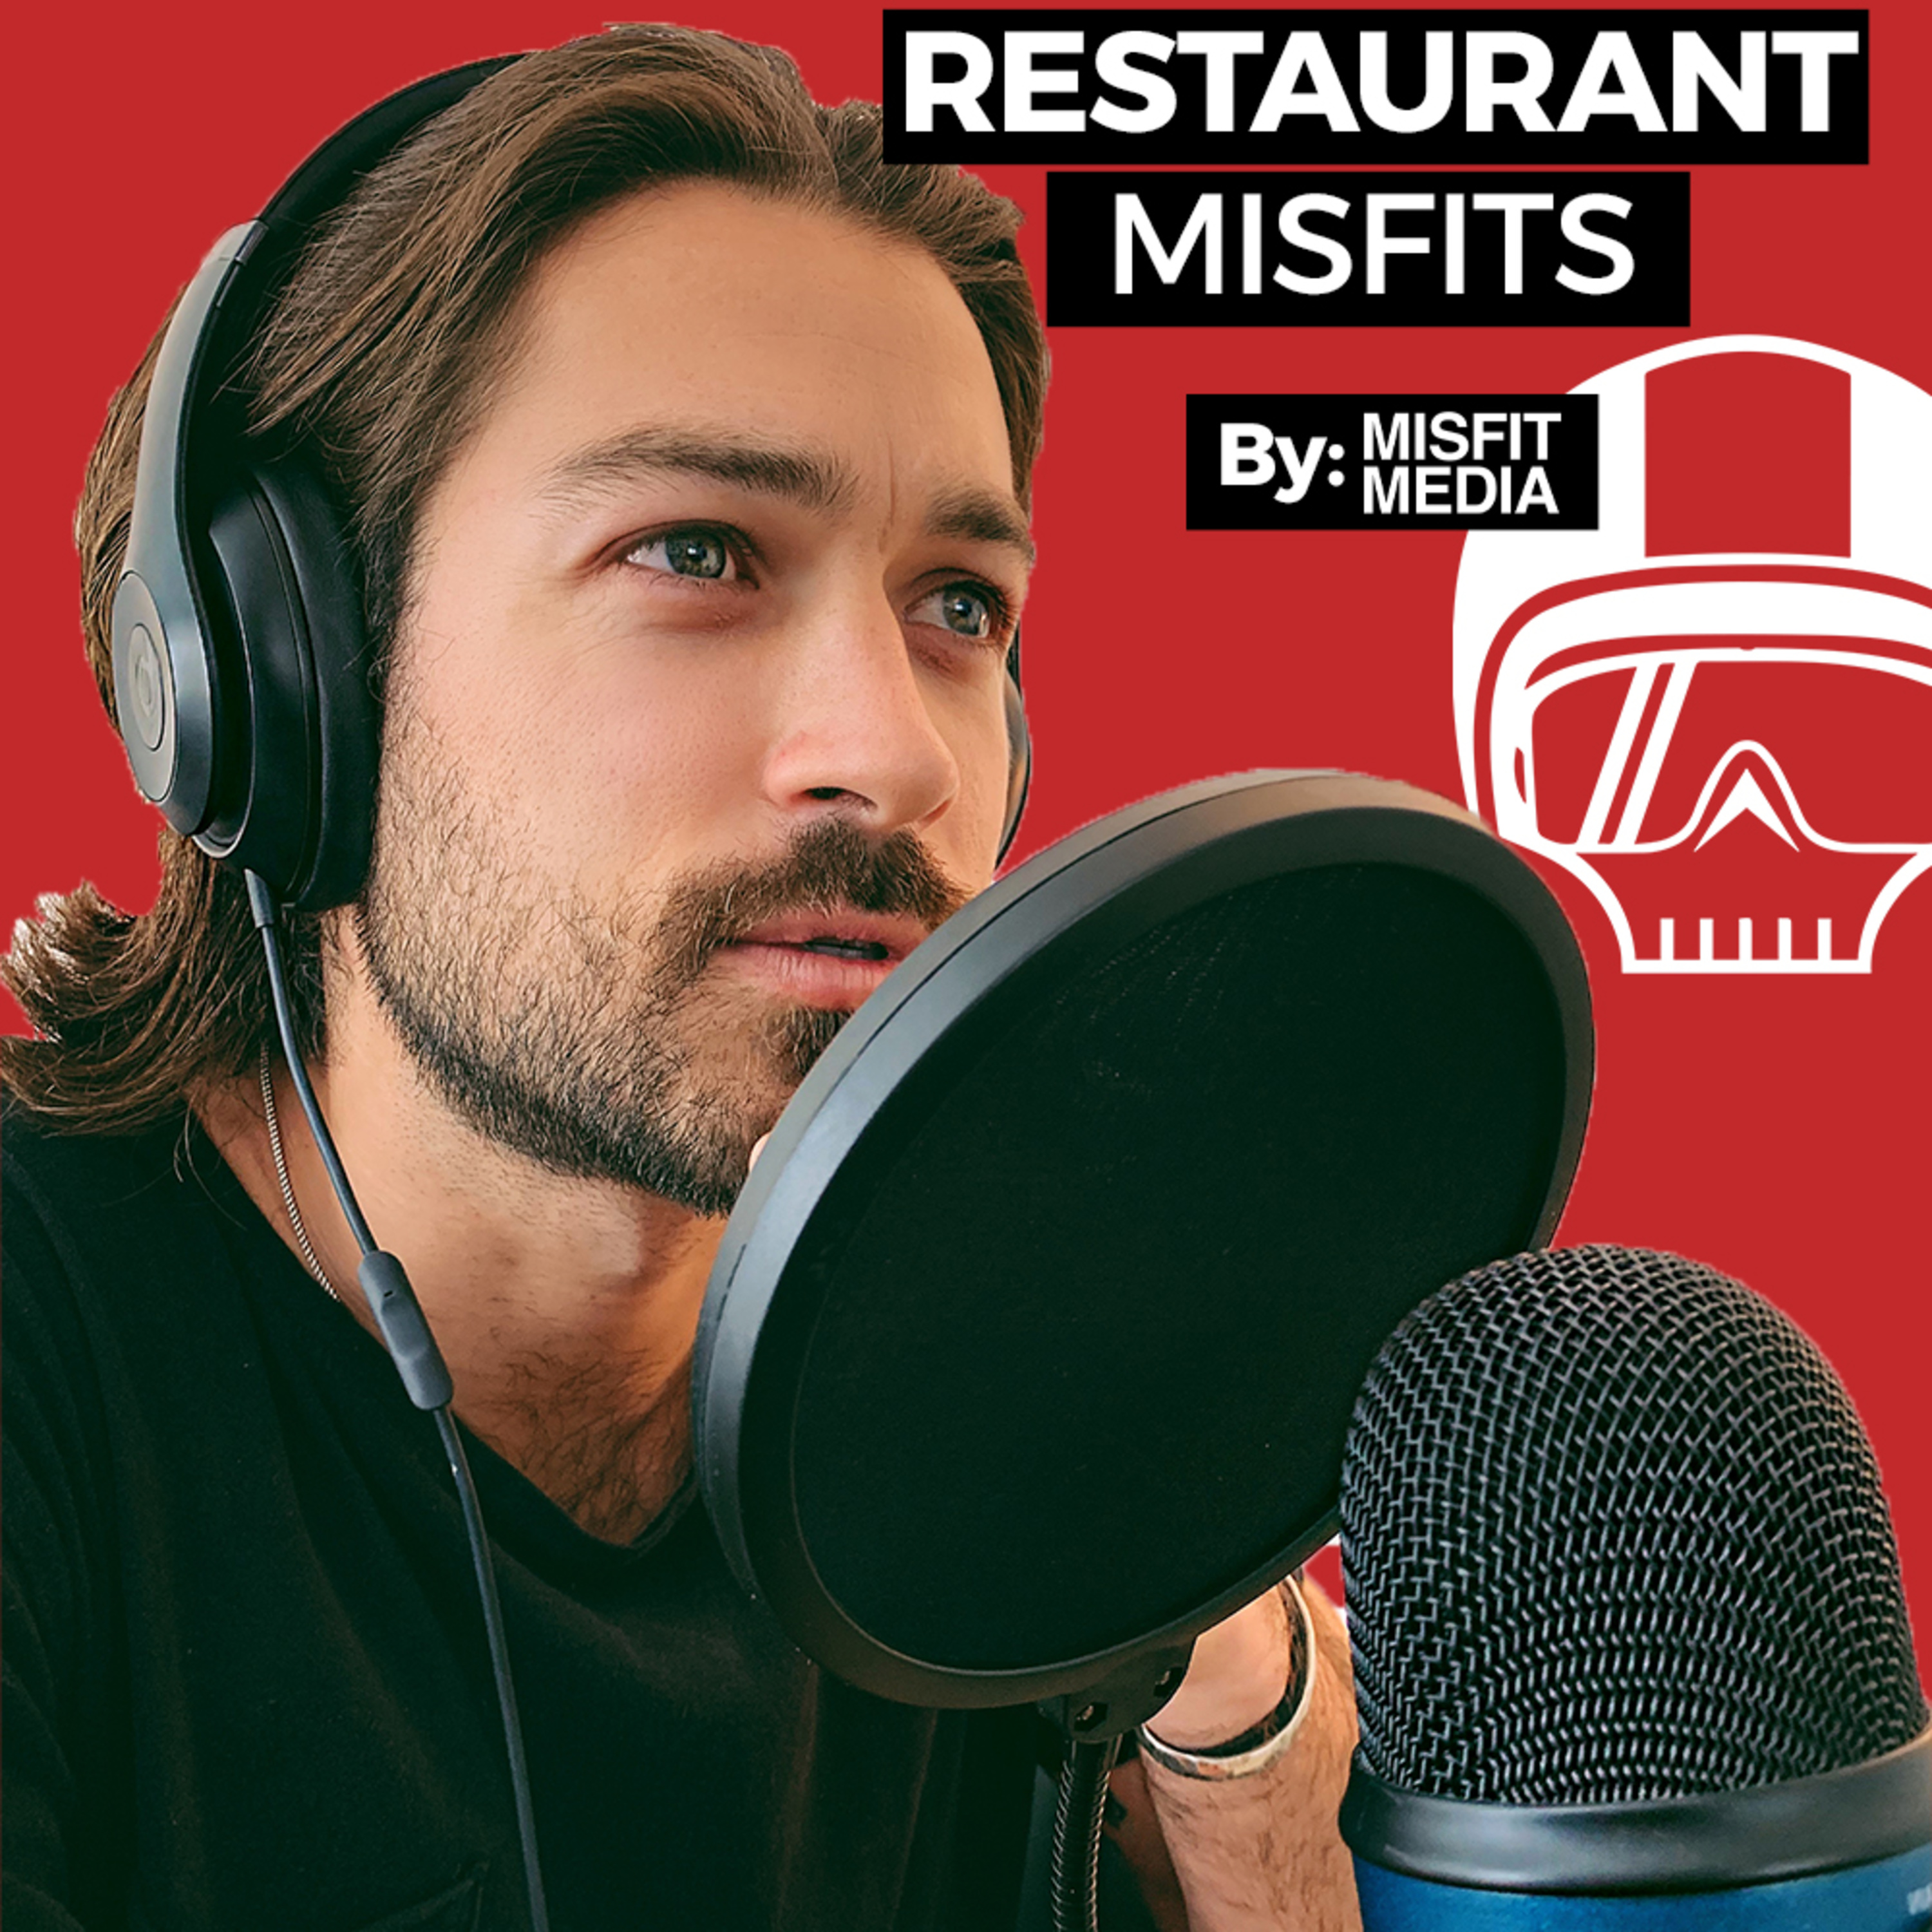 EP04 - Restaurant Offers That Rock During COVID-19